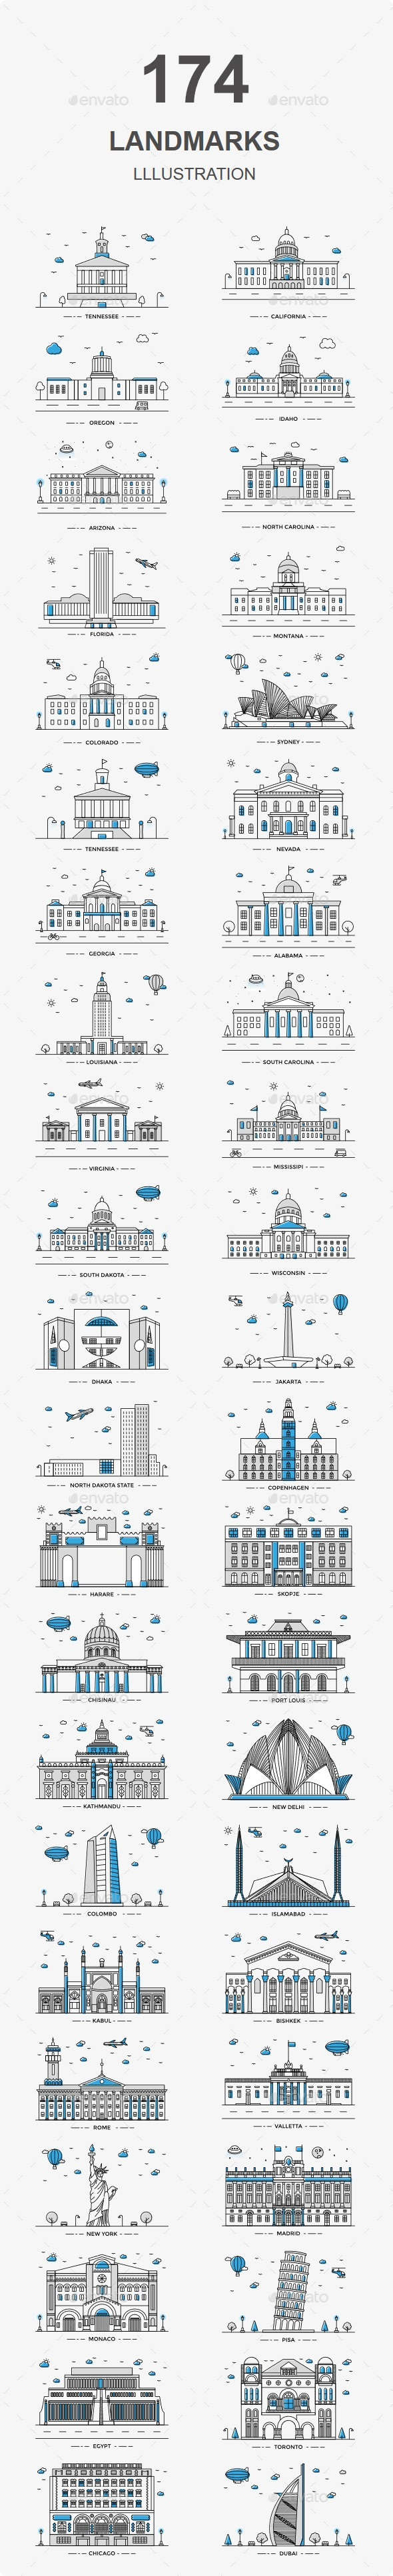 Capital World Landmarks Illustration - Icons